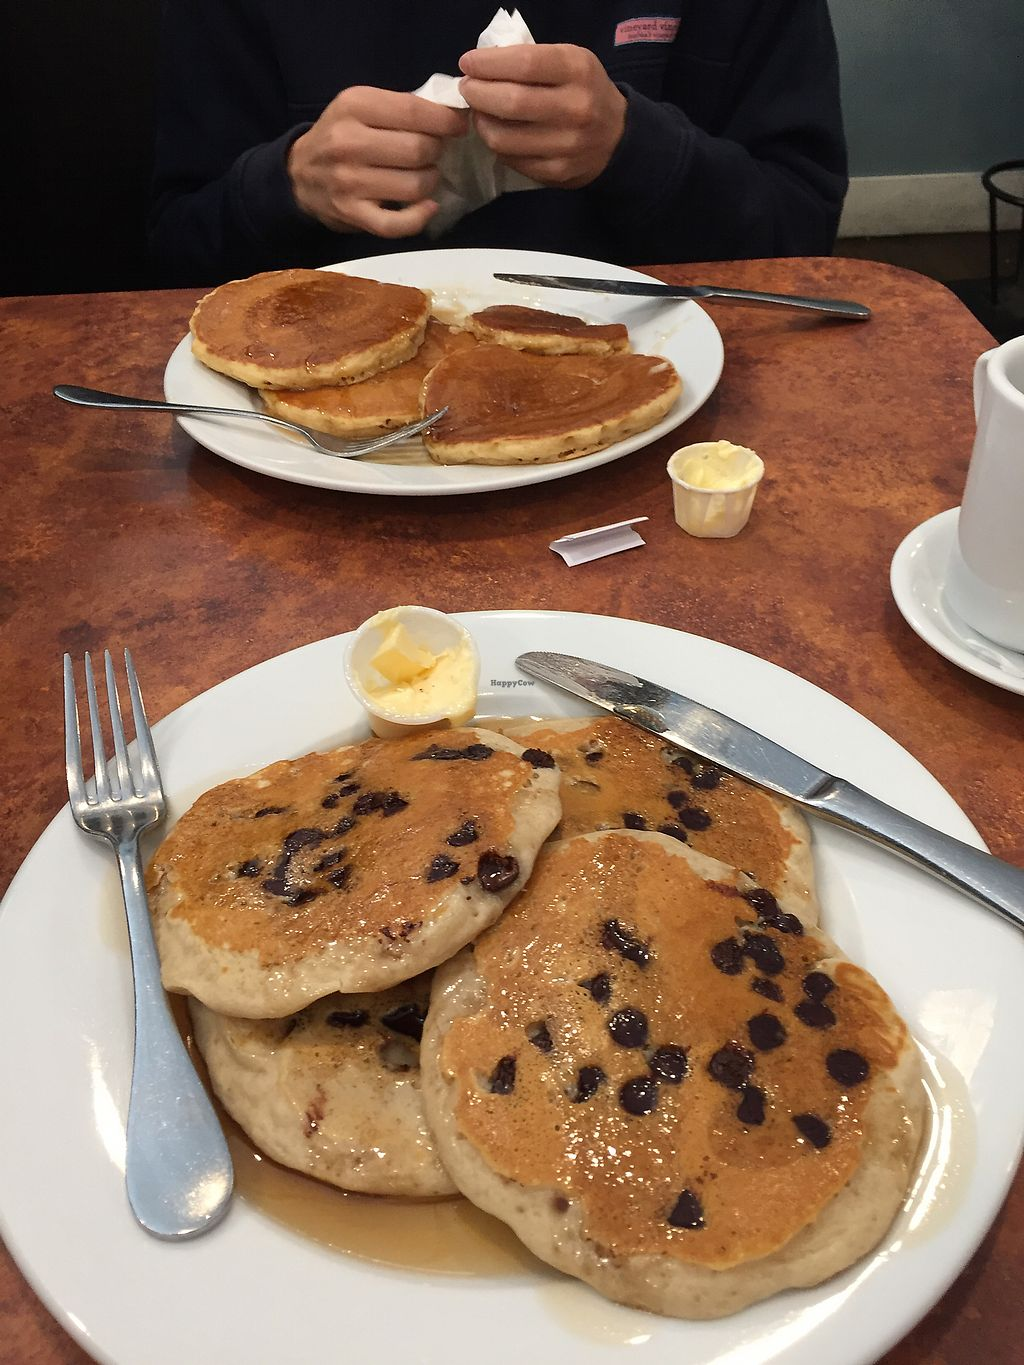 "Photo of Maywood Pancake House  by <a href=""/members/profile/Lizziebenson"">Lizziebenson</a> <br/>vegan chocolate chip pancakes!! <br/> August 28, 2017  - <a href='/contact/abuse/image/58273/298268'>Report</a>"